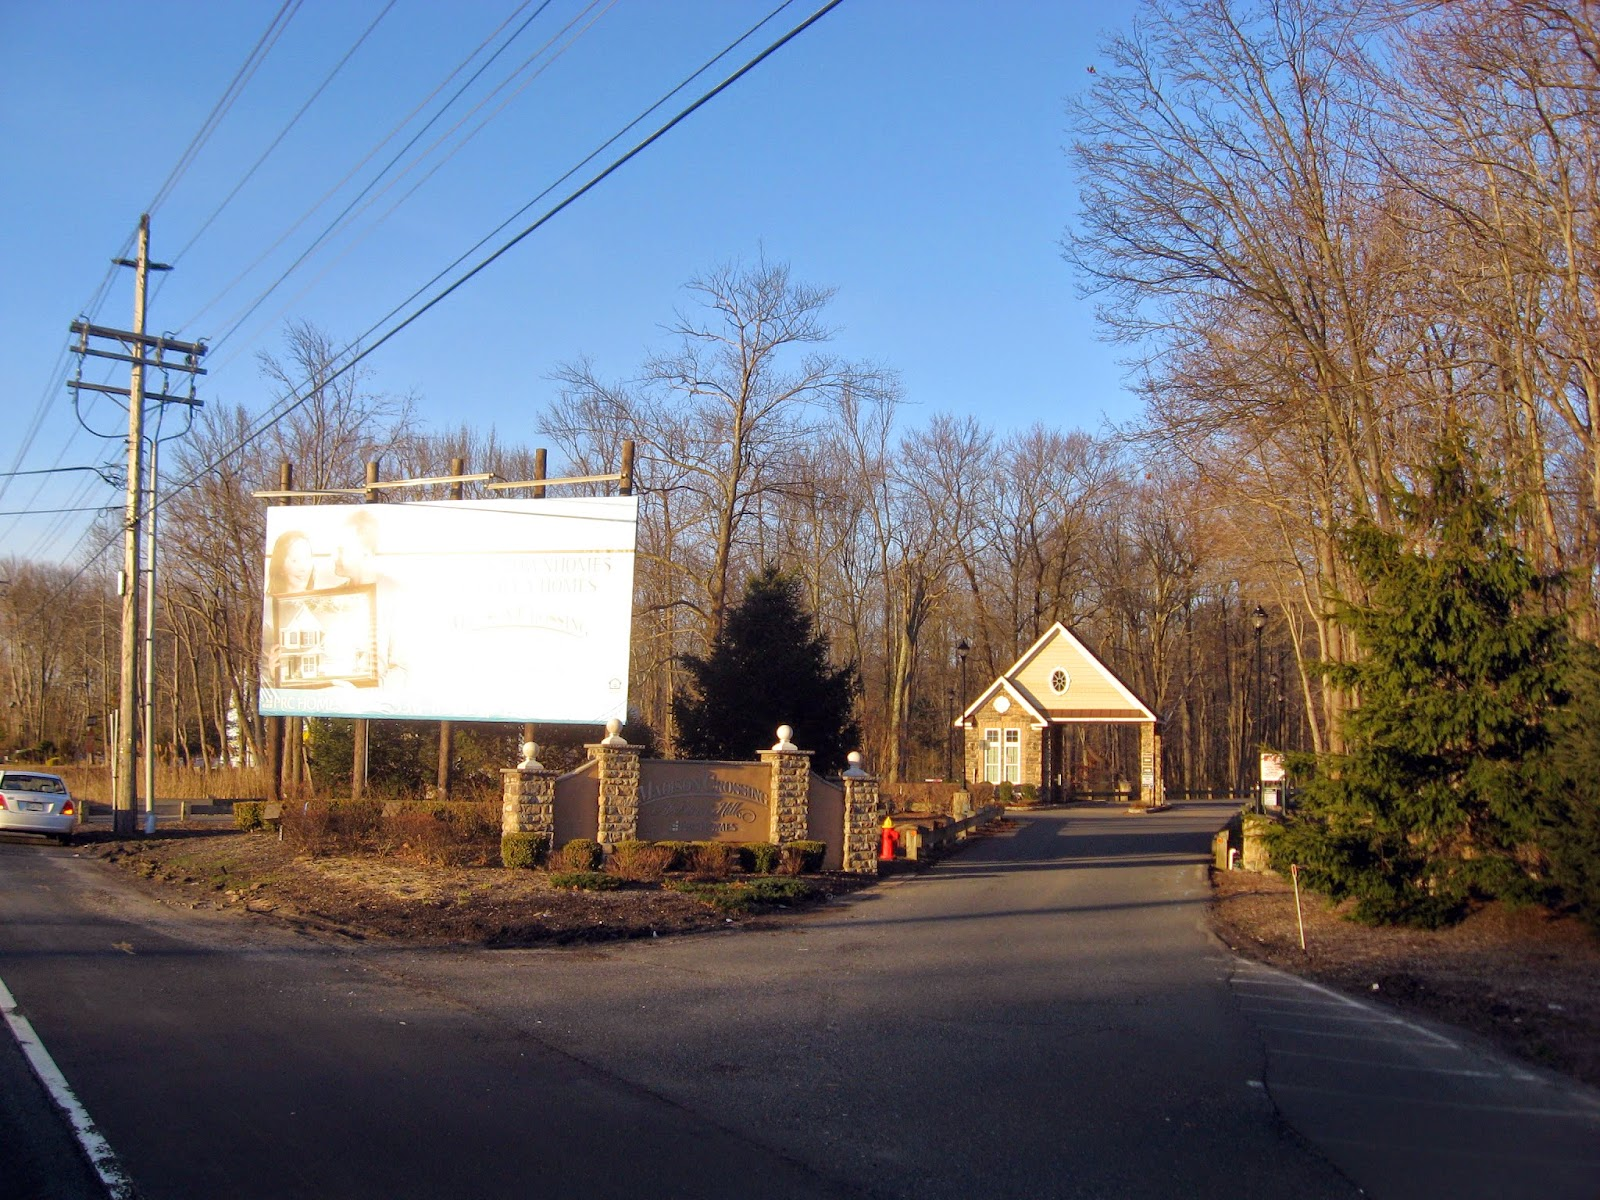 What used to be The Birch Hill Nightclub entrance from Route 9 south Old Bridge, NJ  March 2015